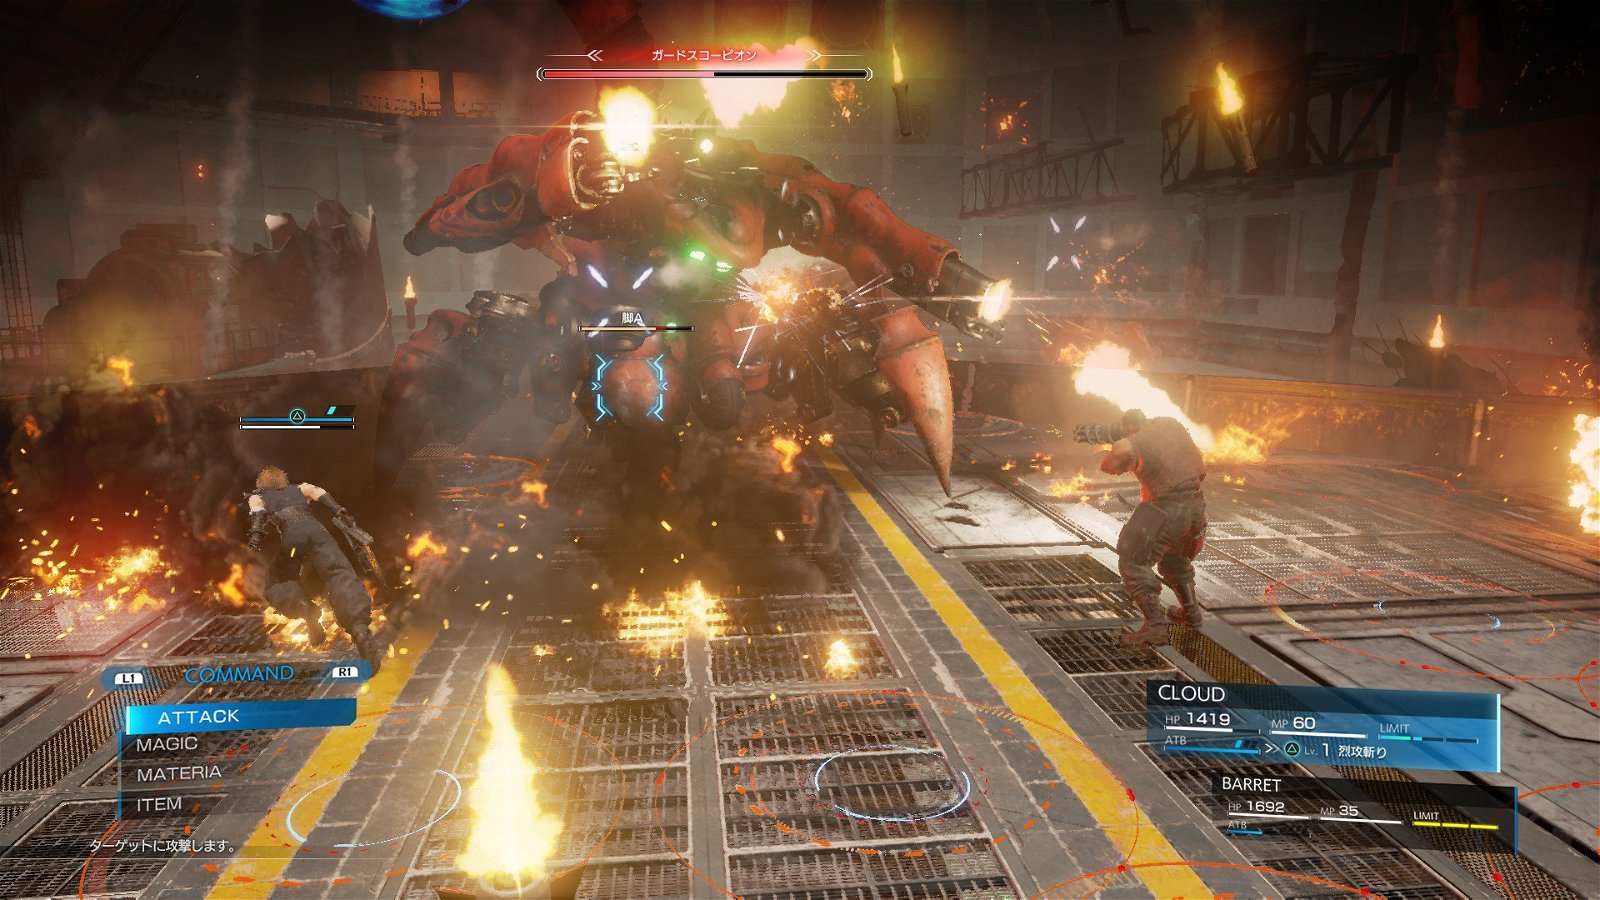 Nomura Reveals Final Fantasy VII Remake's Battle System